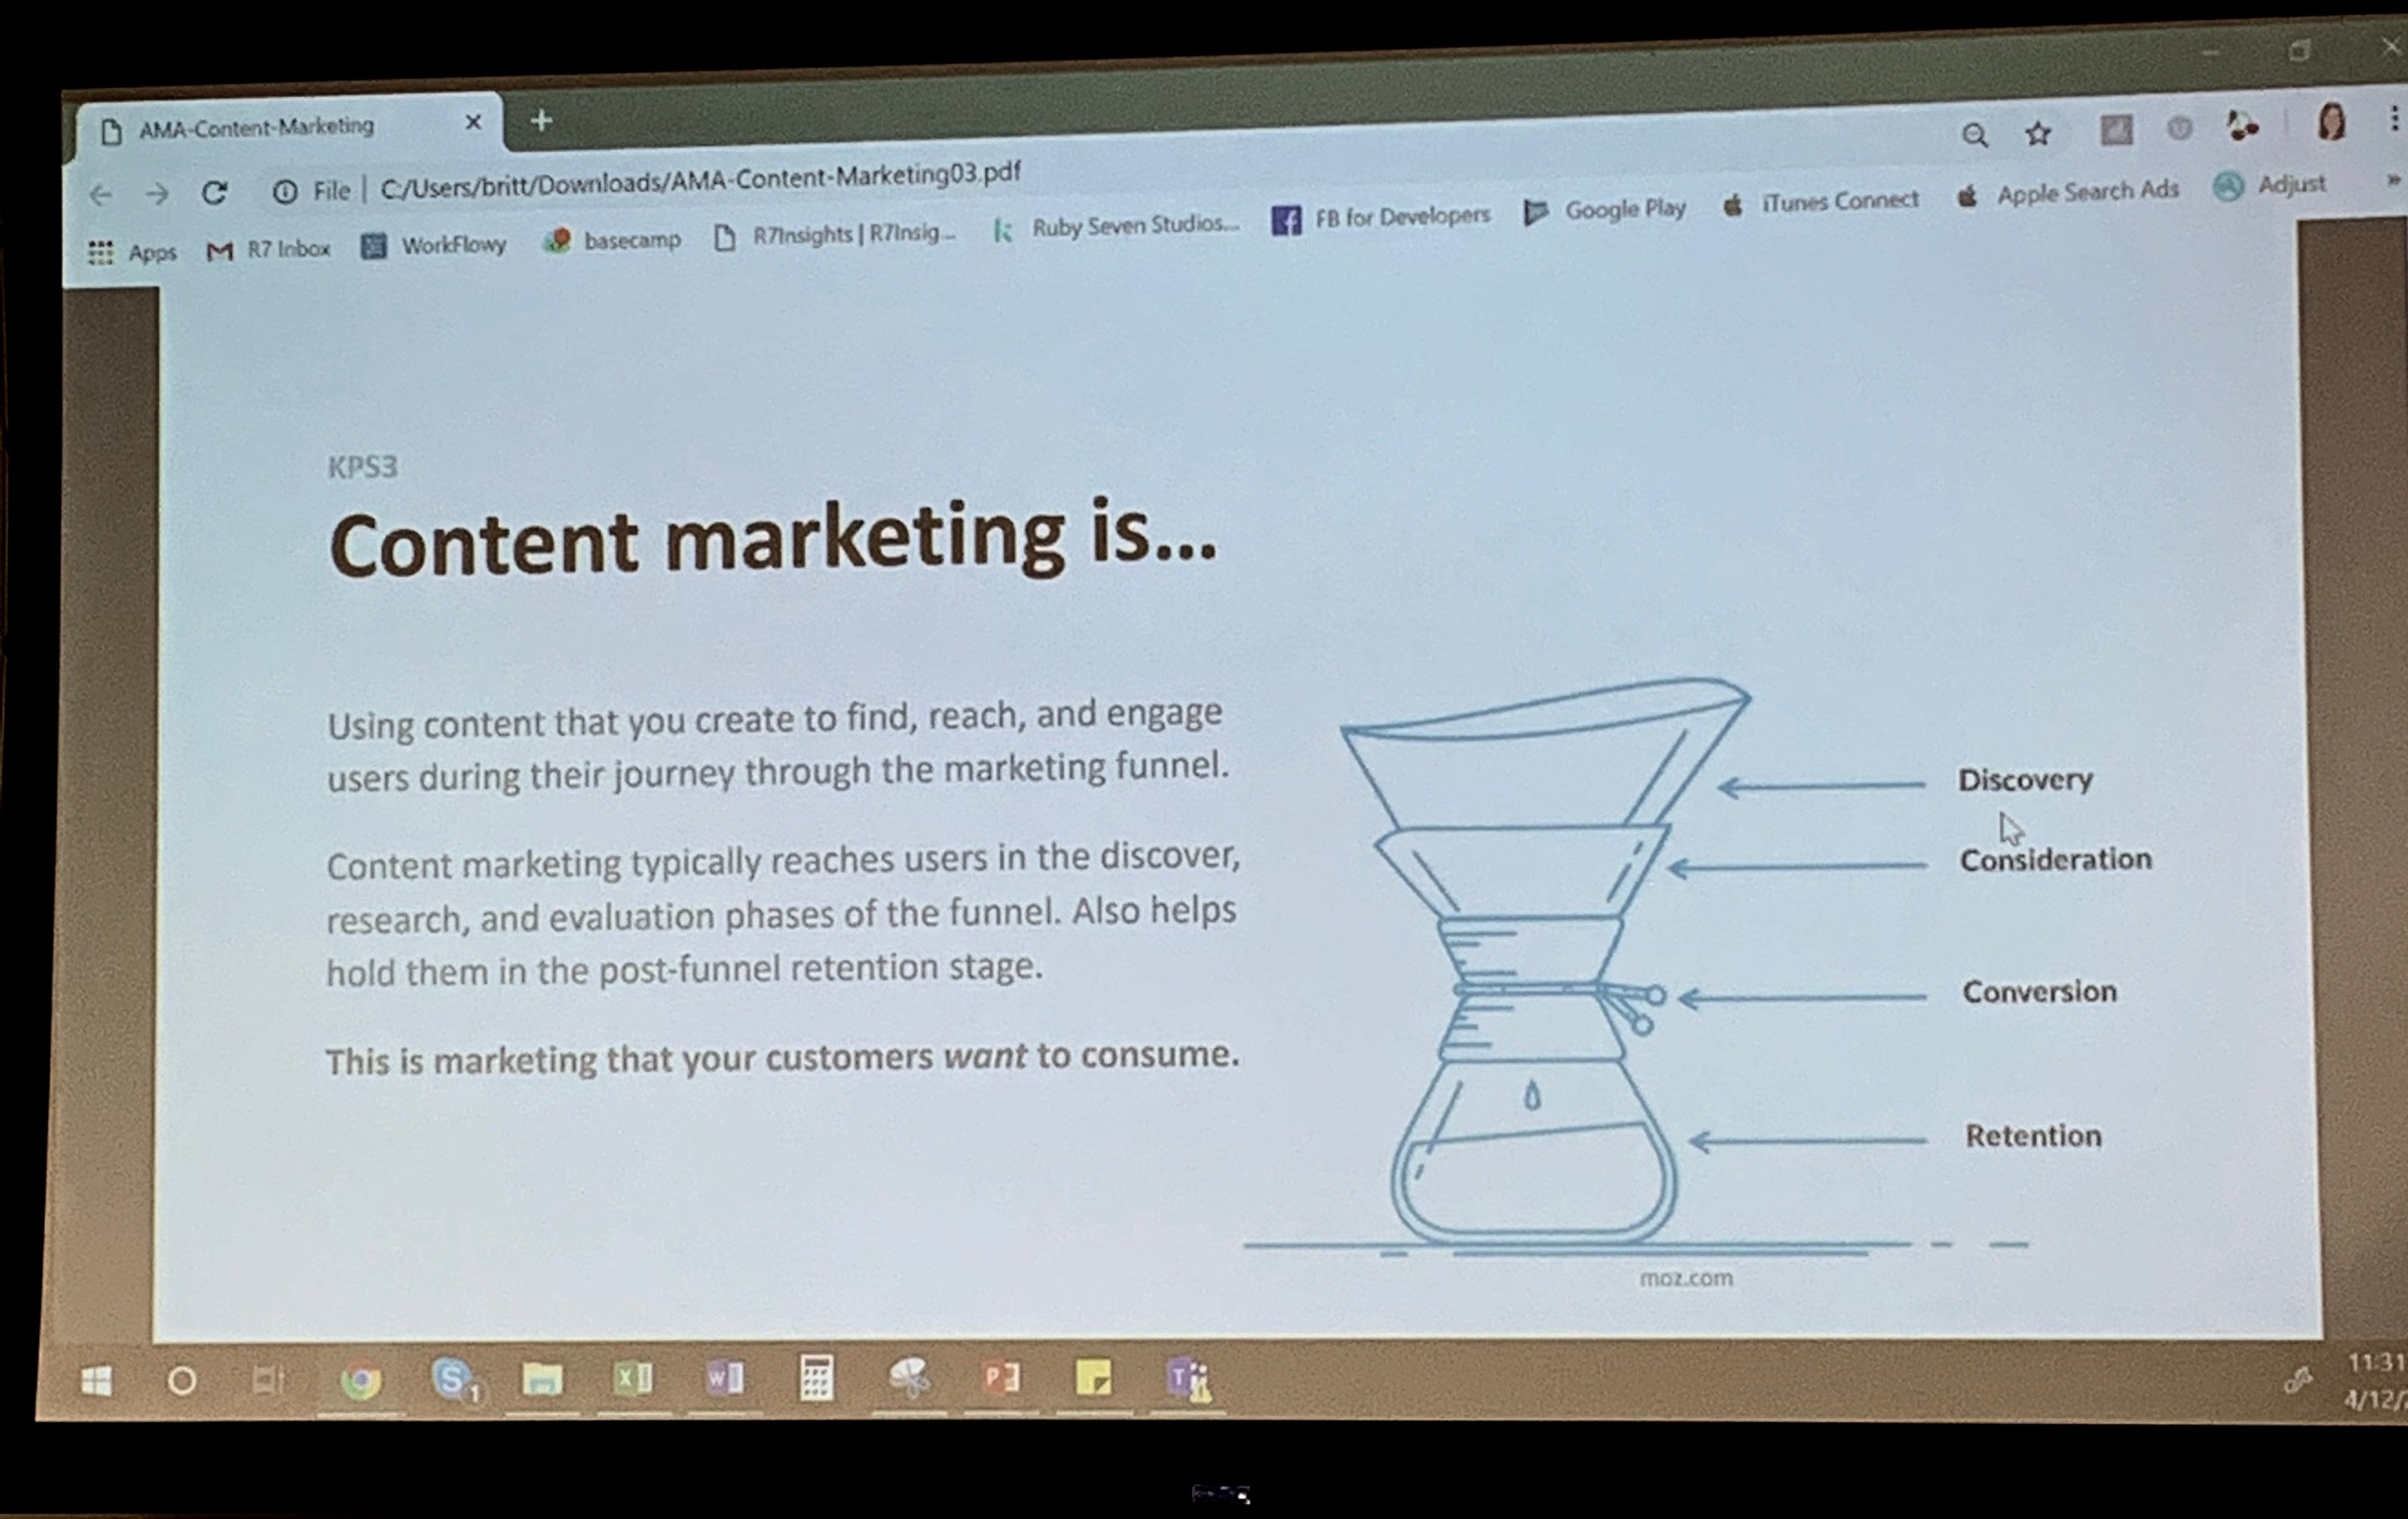 Powerpoint slide with information about content marketing.